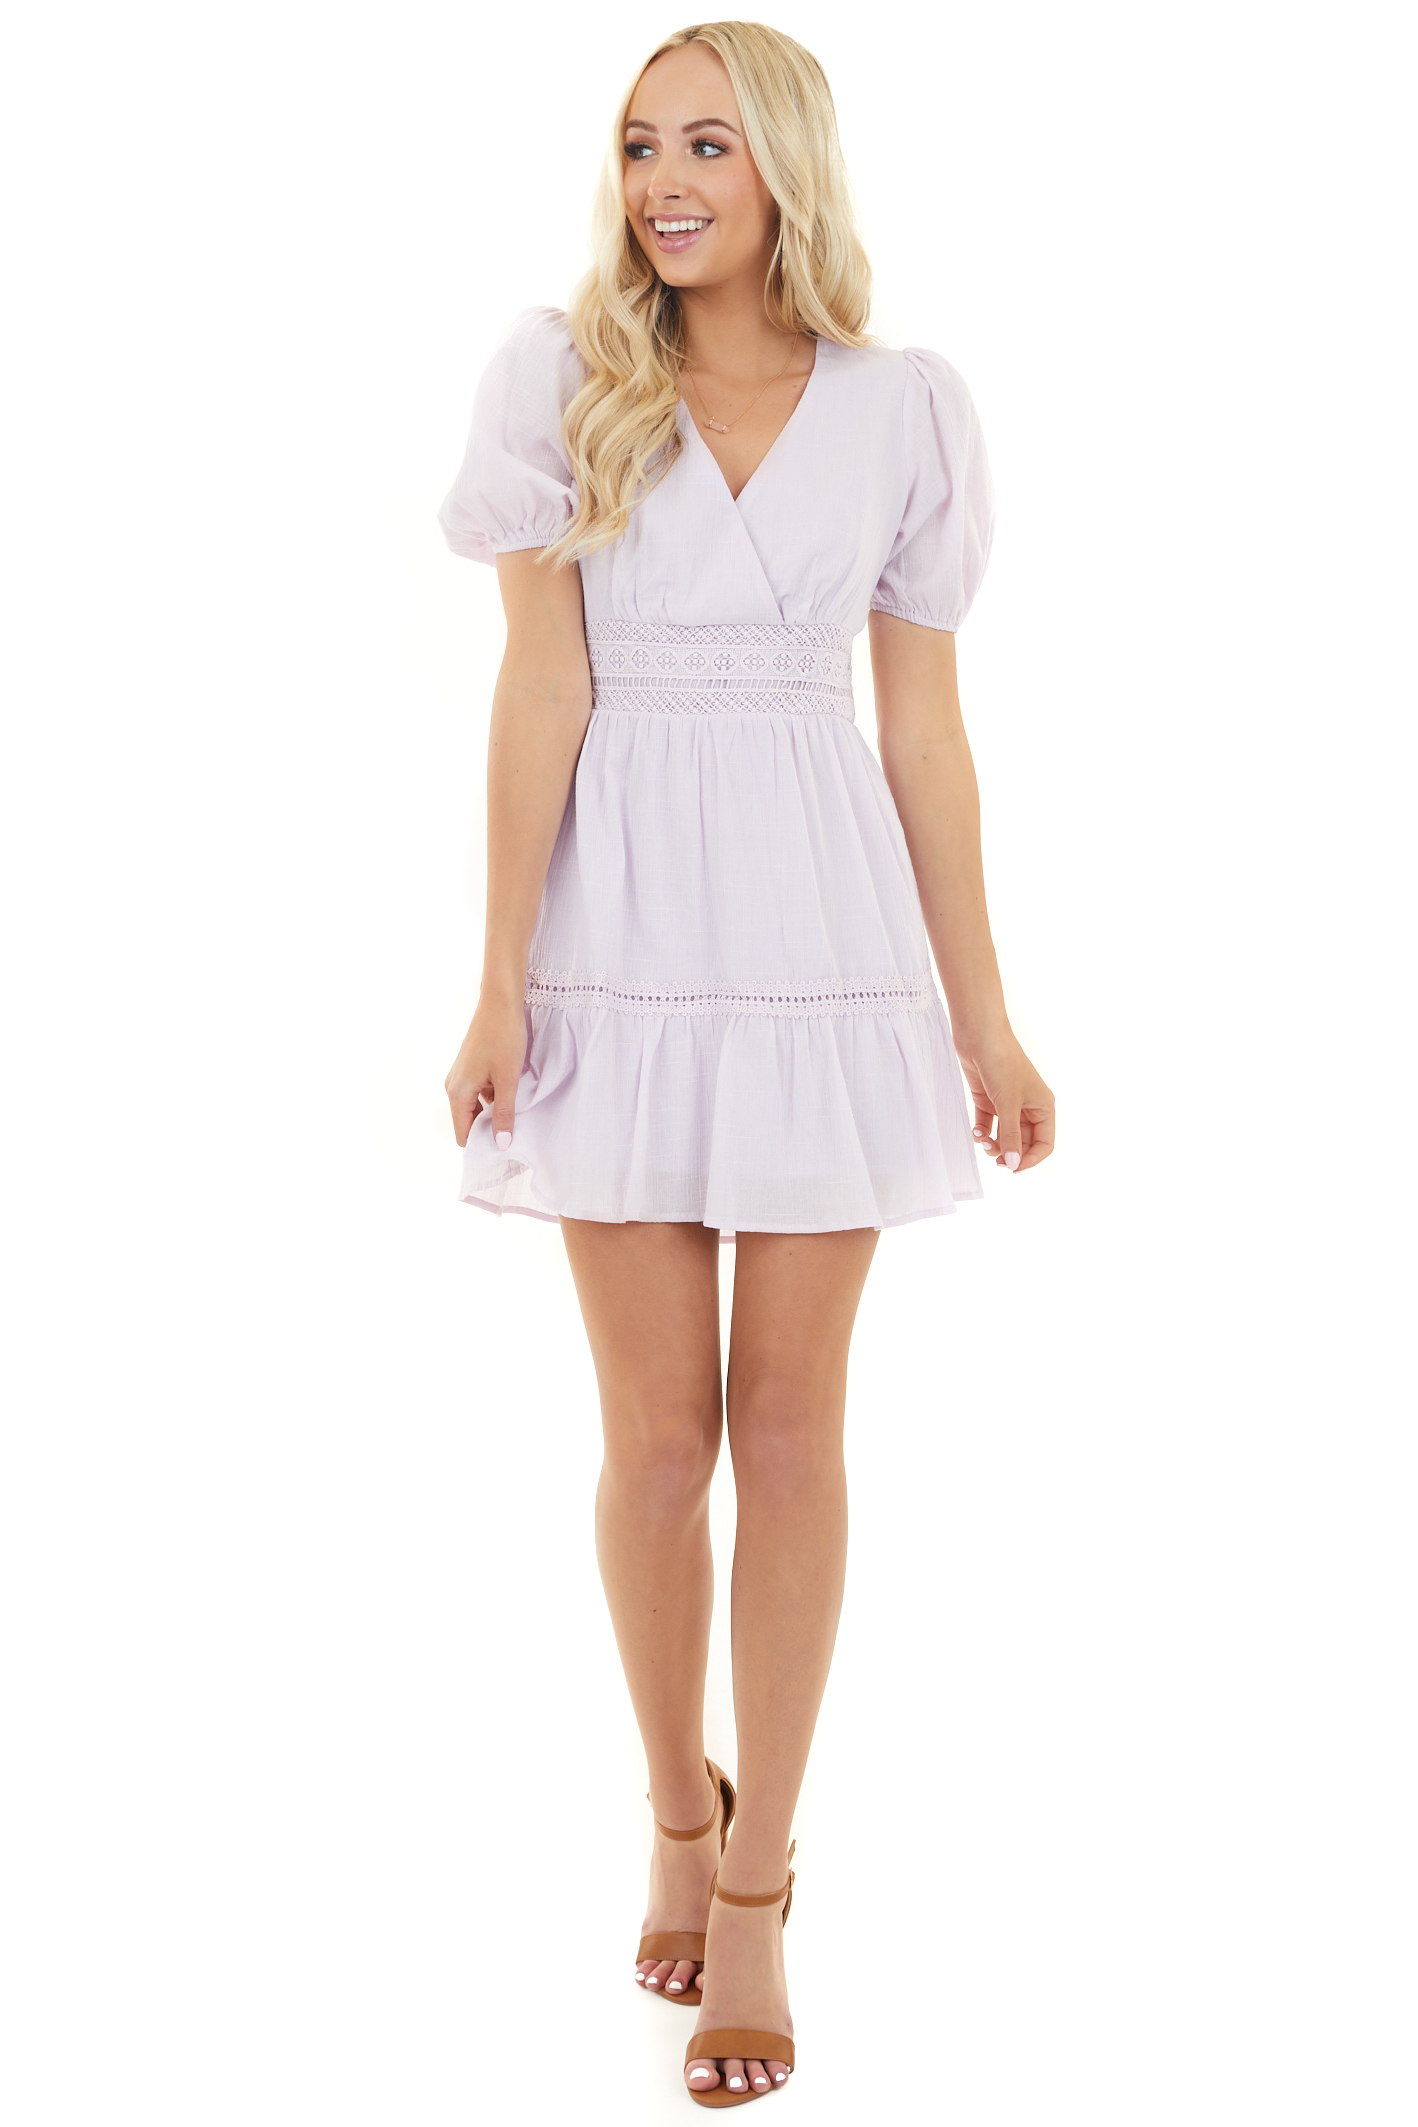 Pale Lilac Short Puff Sleeve Mini Dress with Crochet Details